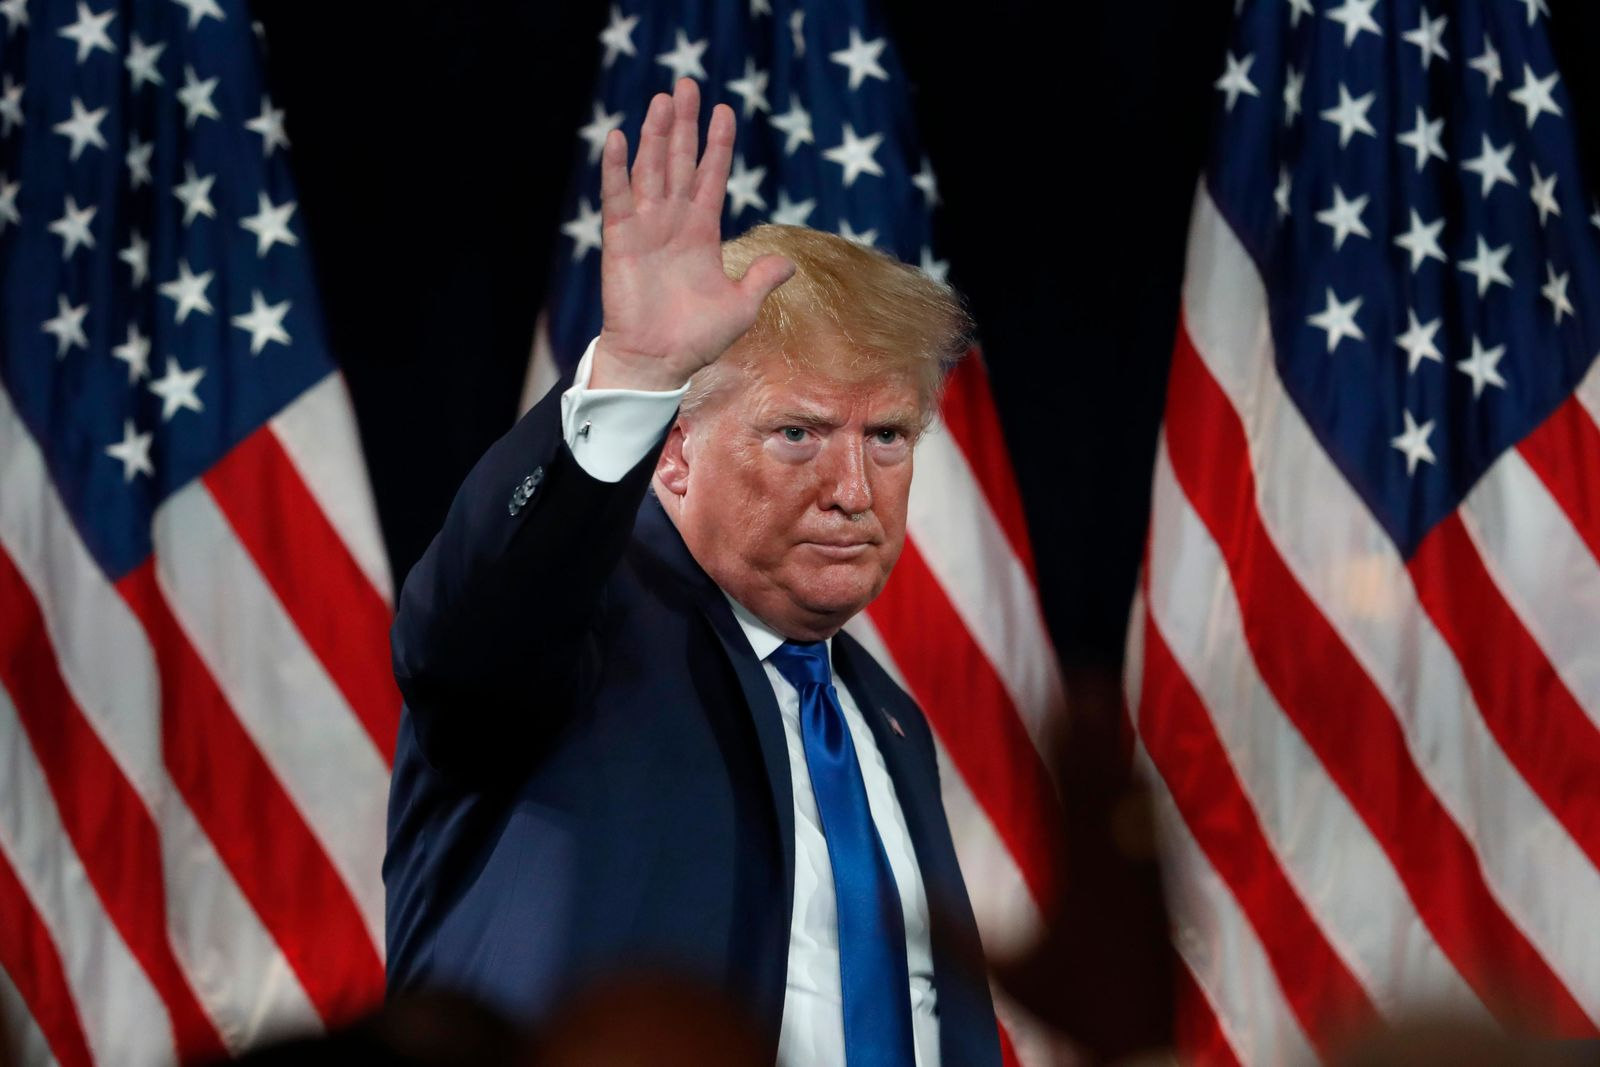 President Donald Trump waves to supporters after speaking at his Black Voices for Trump rally Friday, Nov. 8, 2019, in Atlanta. (AP Photo/John Bazemore)